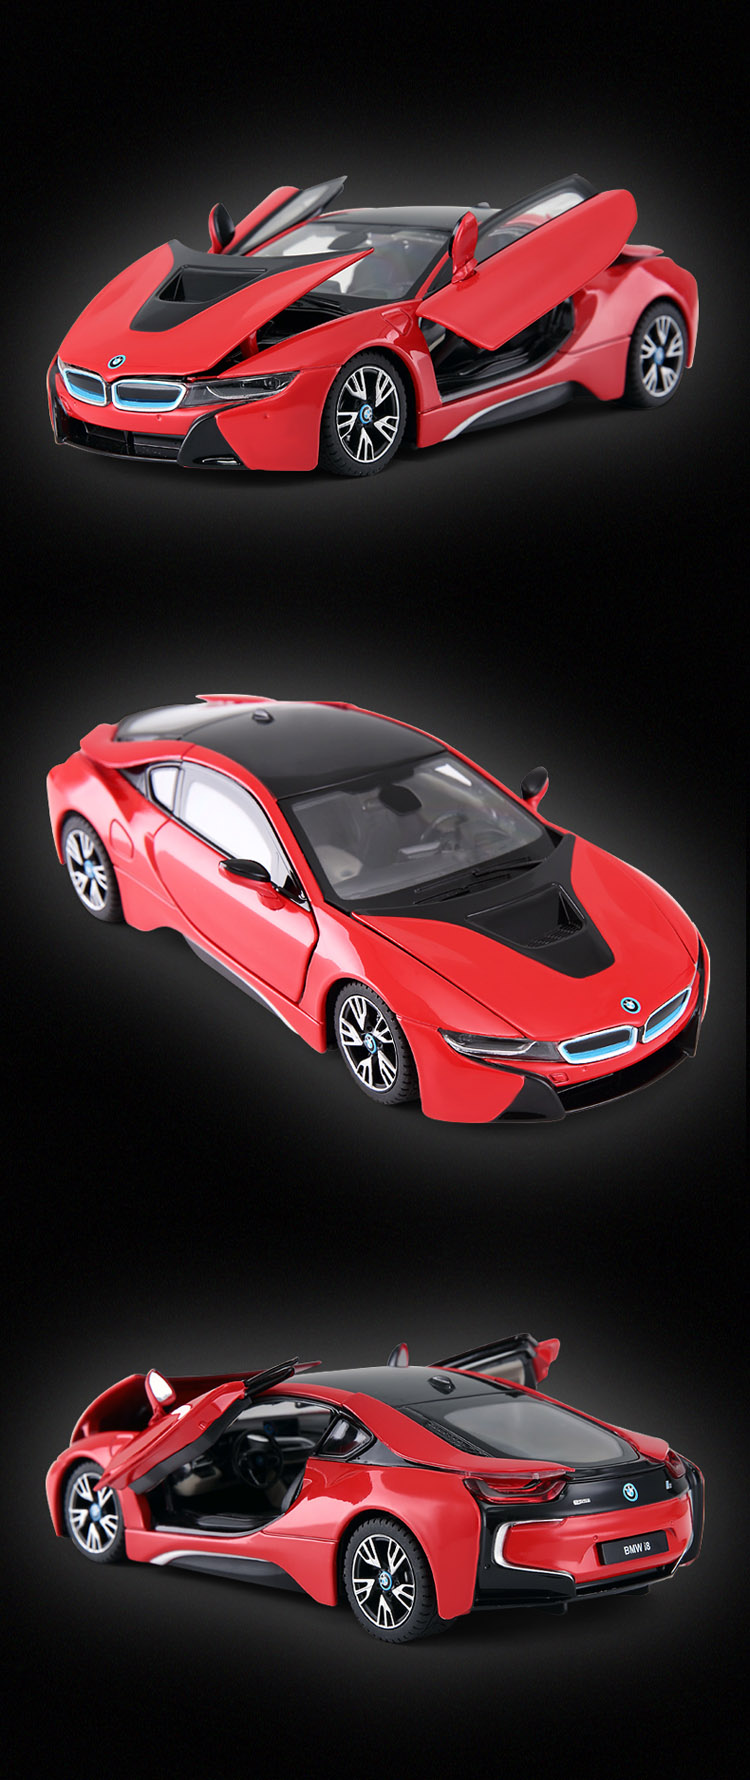 Hot sale item for kids antique BMW metal model toy car